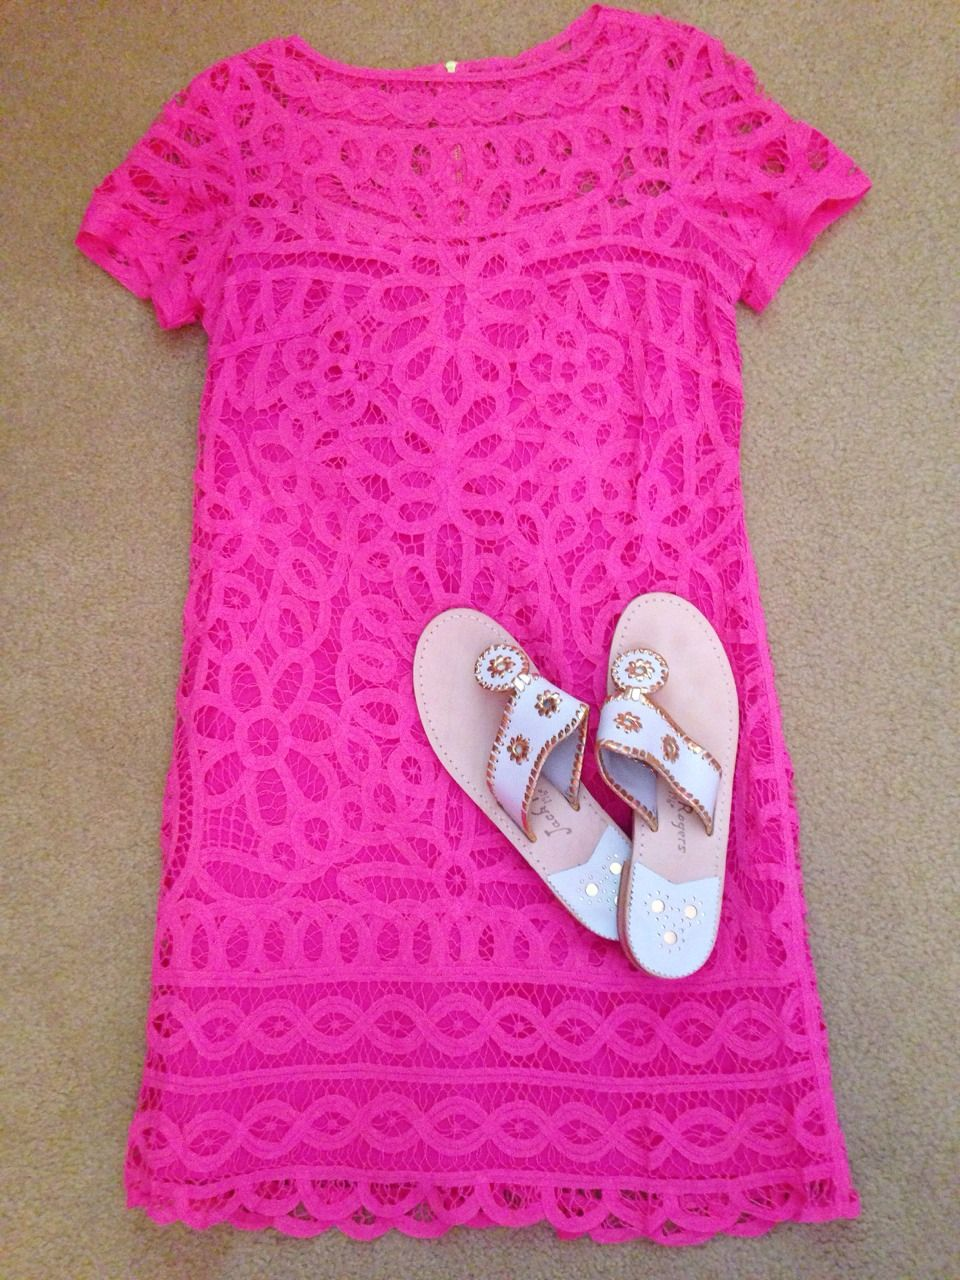 Lilly Pulitzer | Lovely Lilly | Pinterest | Soutache, Vestiditos y Ropa